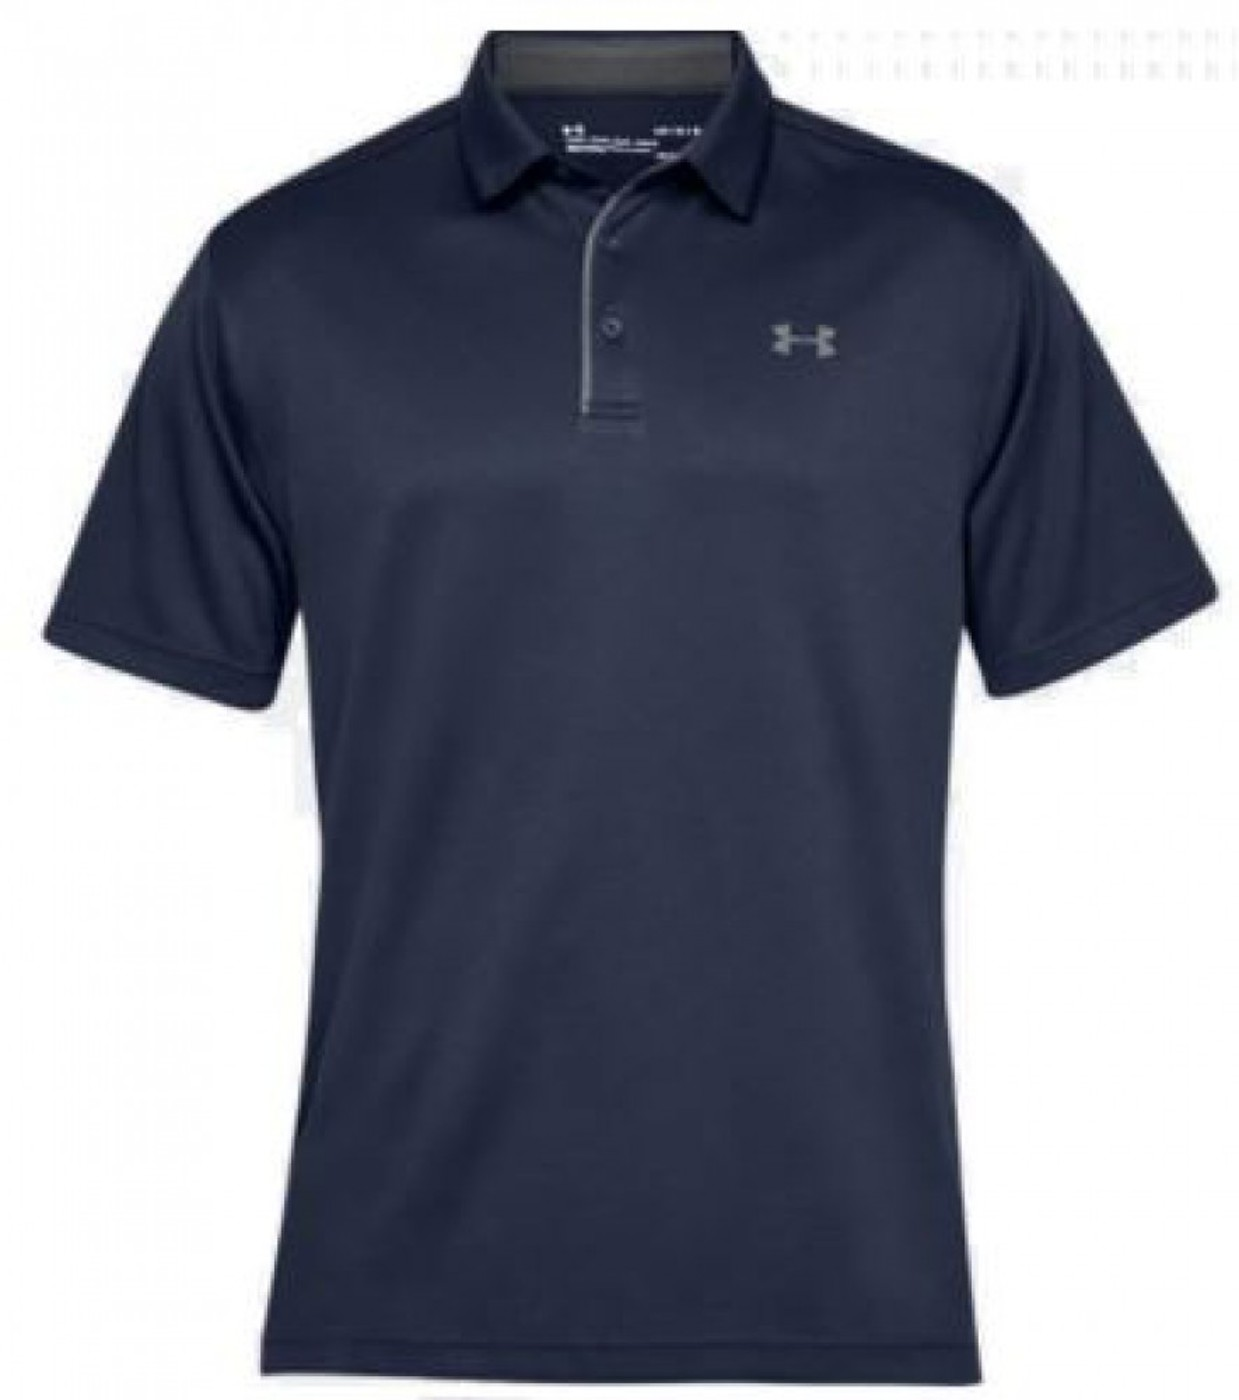 UNDER ARMOUR Tech Polo - Herren